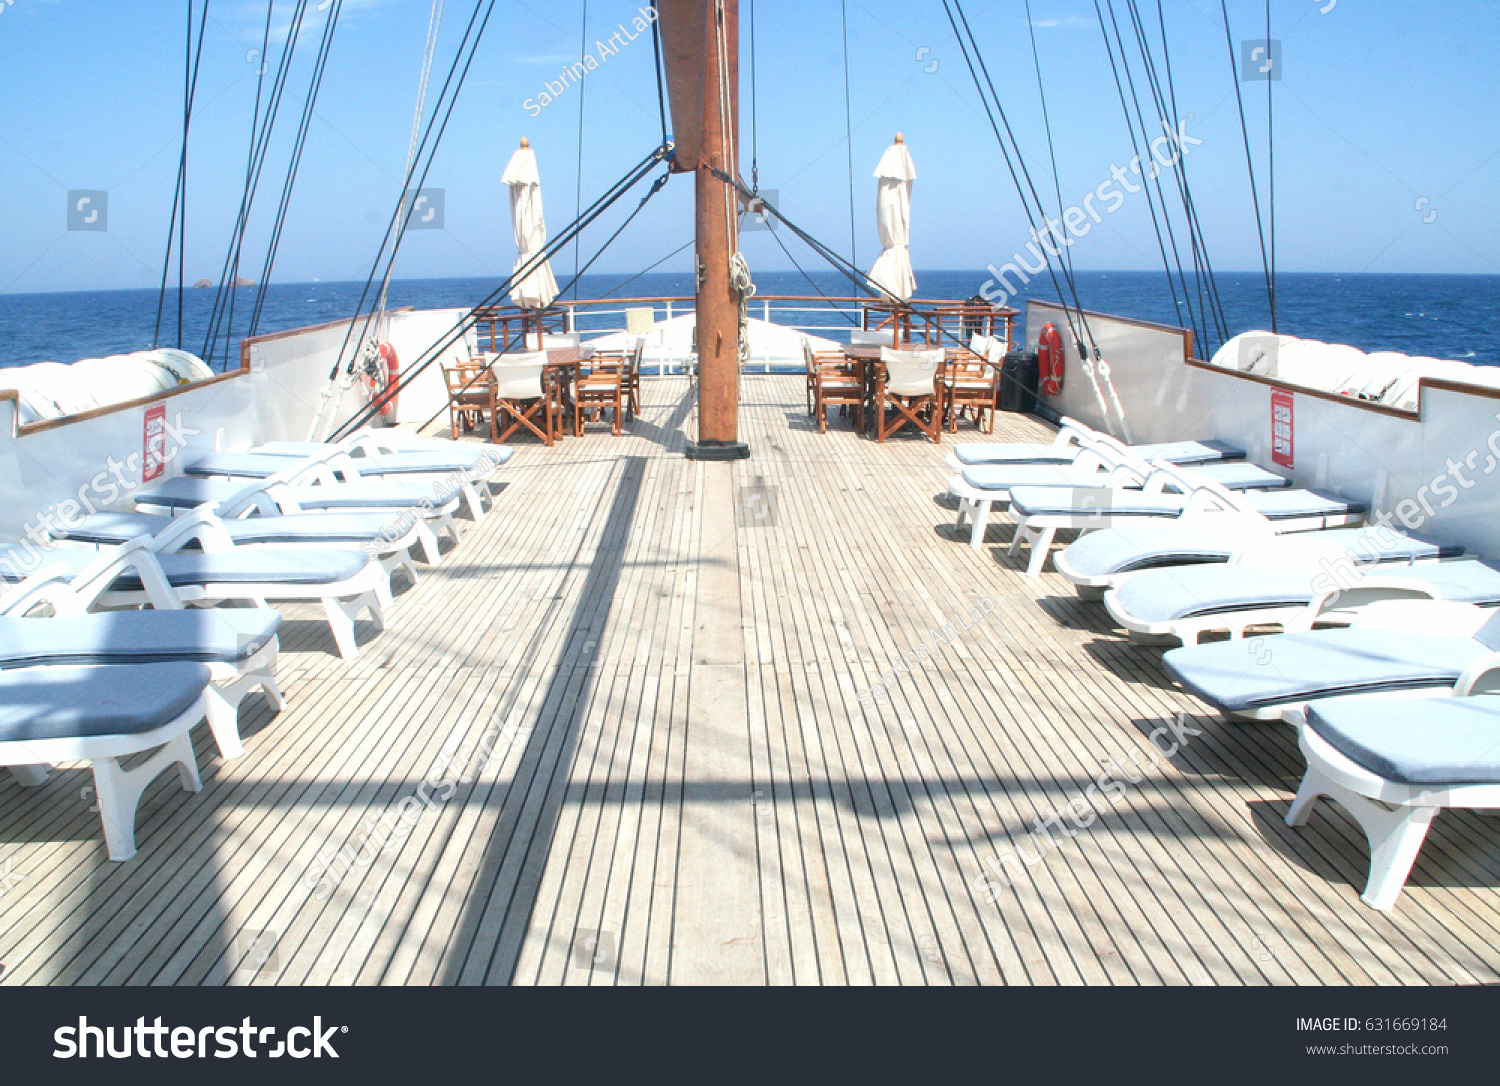 Classic Wooden Yacht Deck With Deck Chairs. Deck Chairs On A Sunny Yacht  Deck.